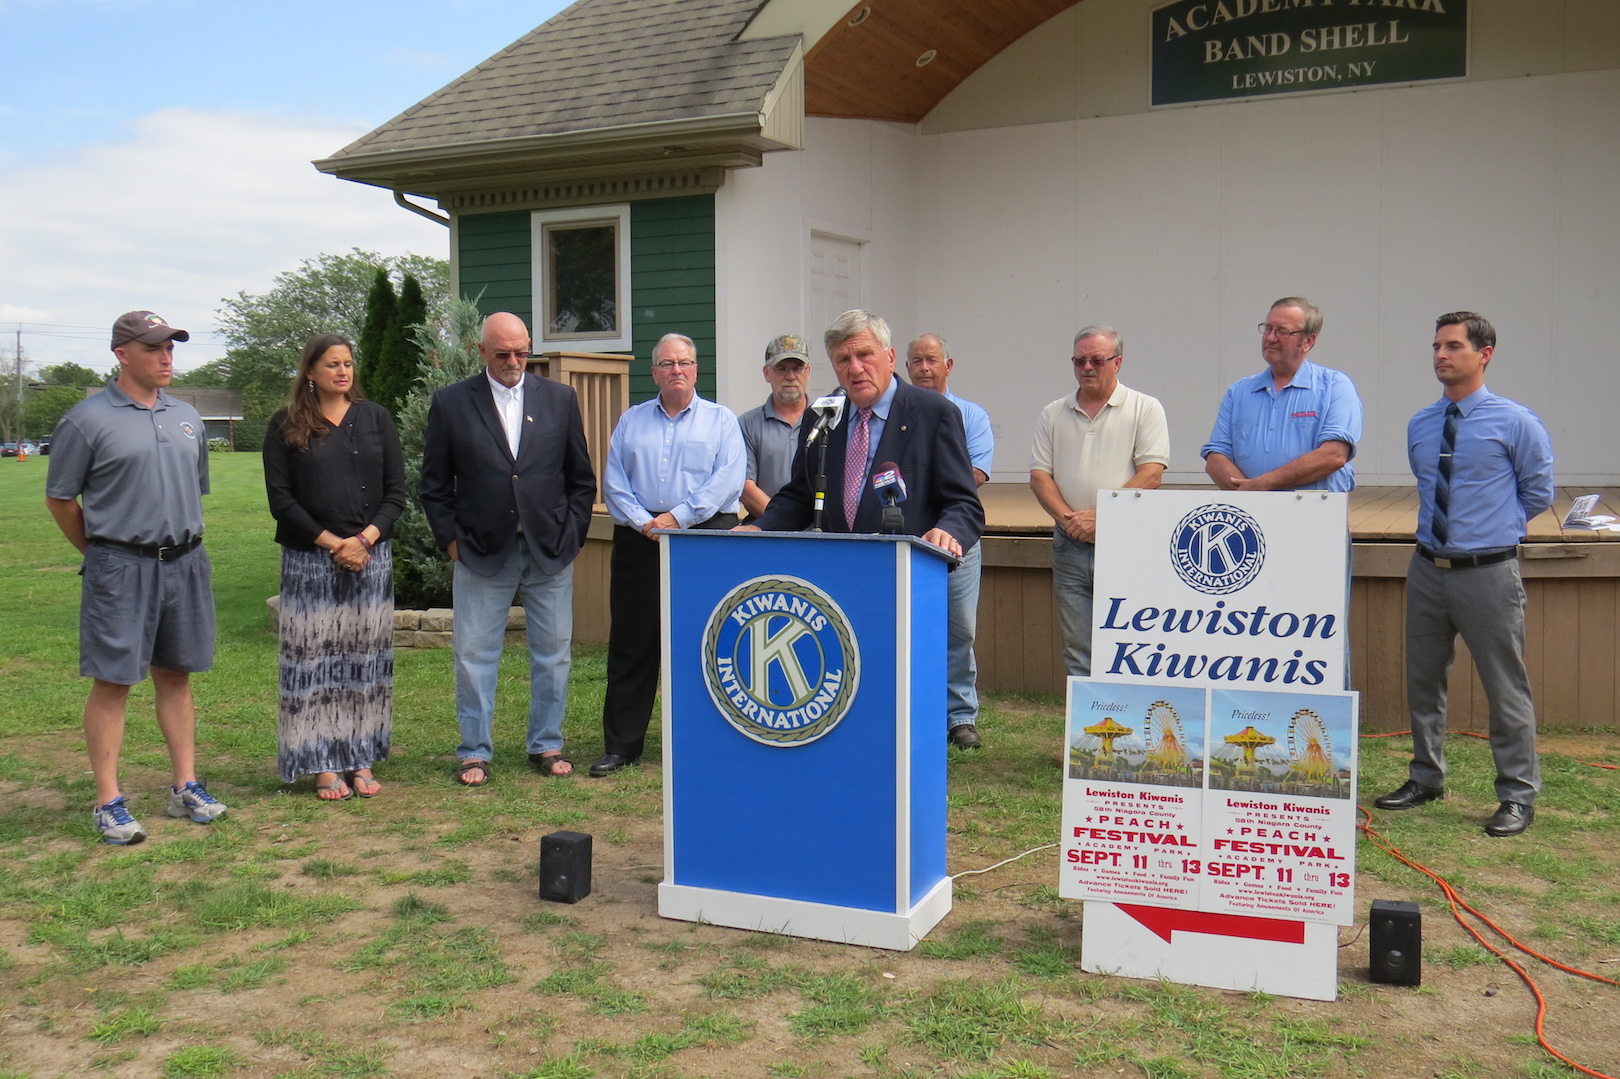 Jerry Wolfgang, center, and members of the Kiwanis Club of Lewiston join local elected leaders at a Peach Festival press conference Wednesday.